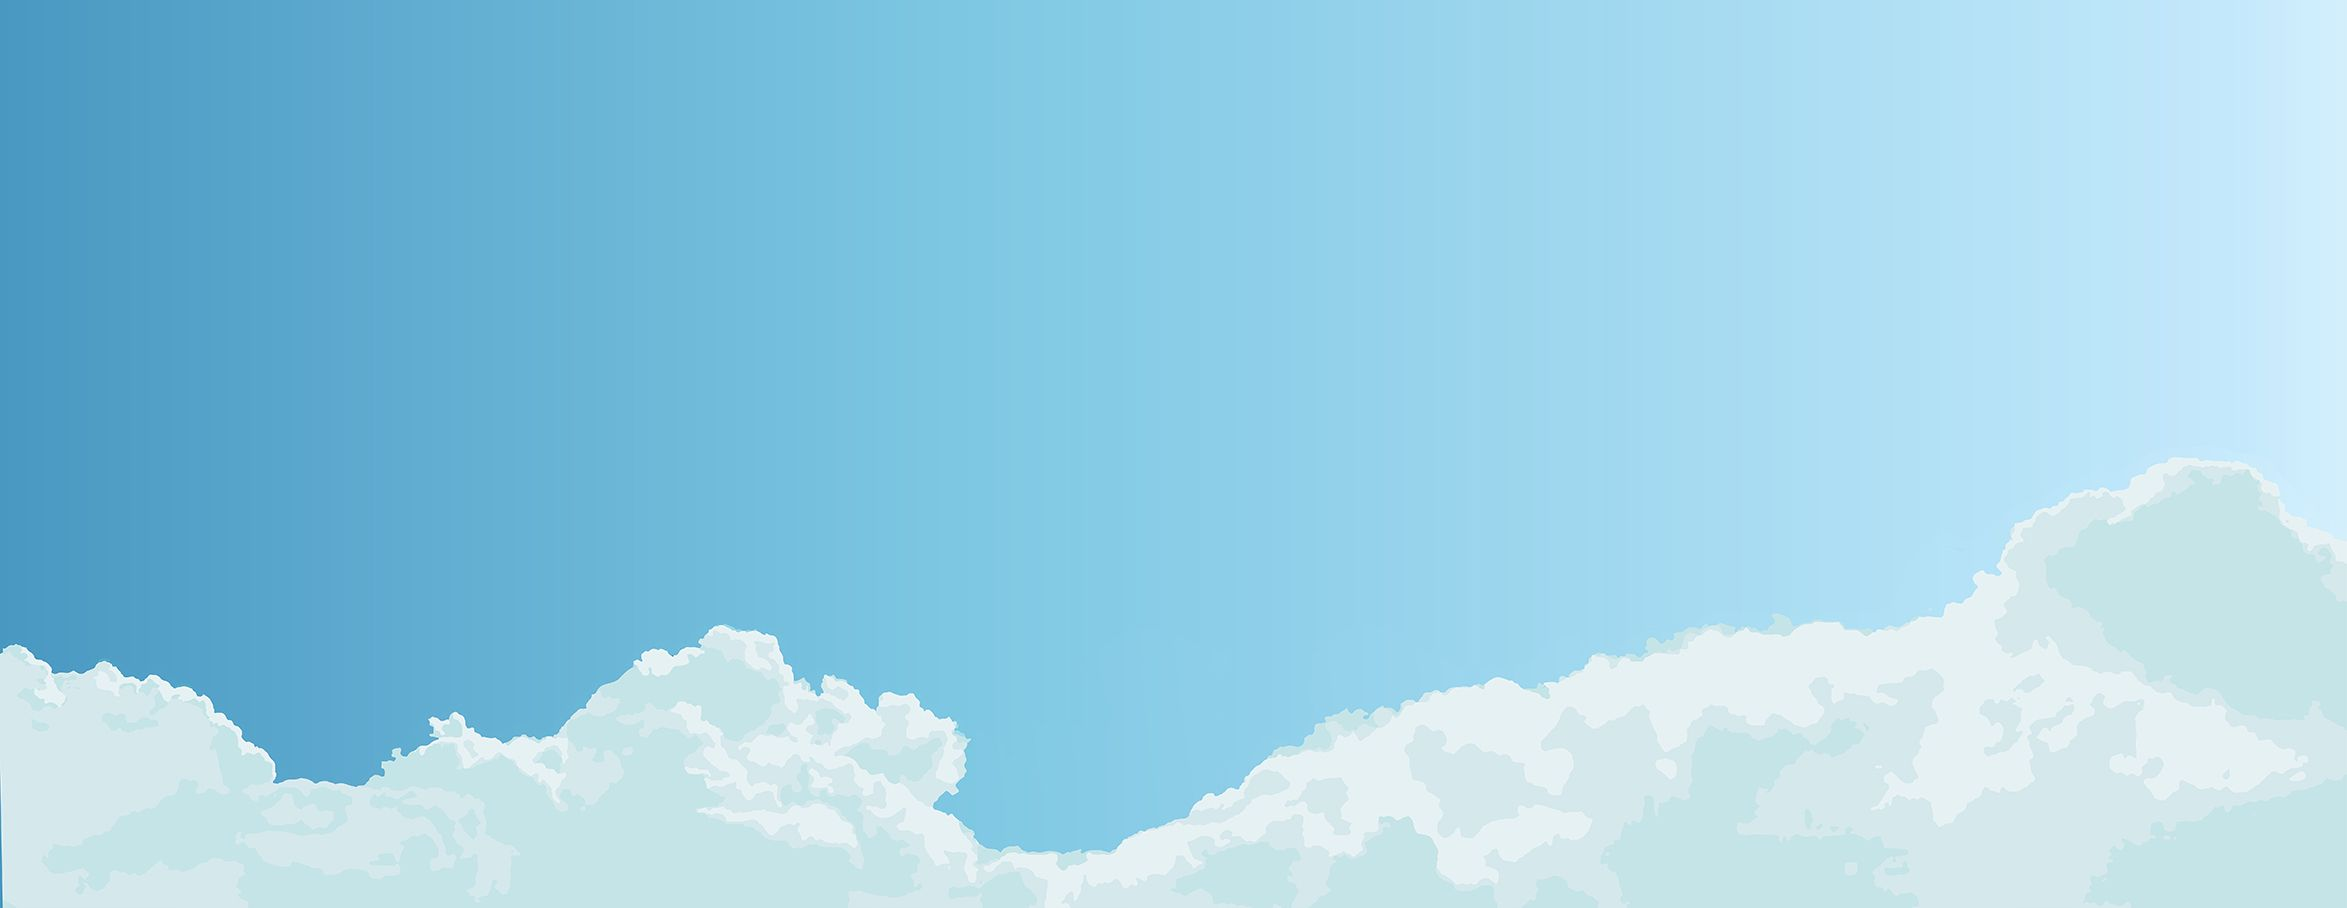 Cloud In Blue Sky Abstract Shine Sunny Day Background With